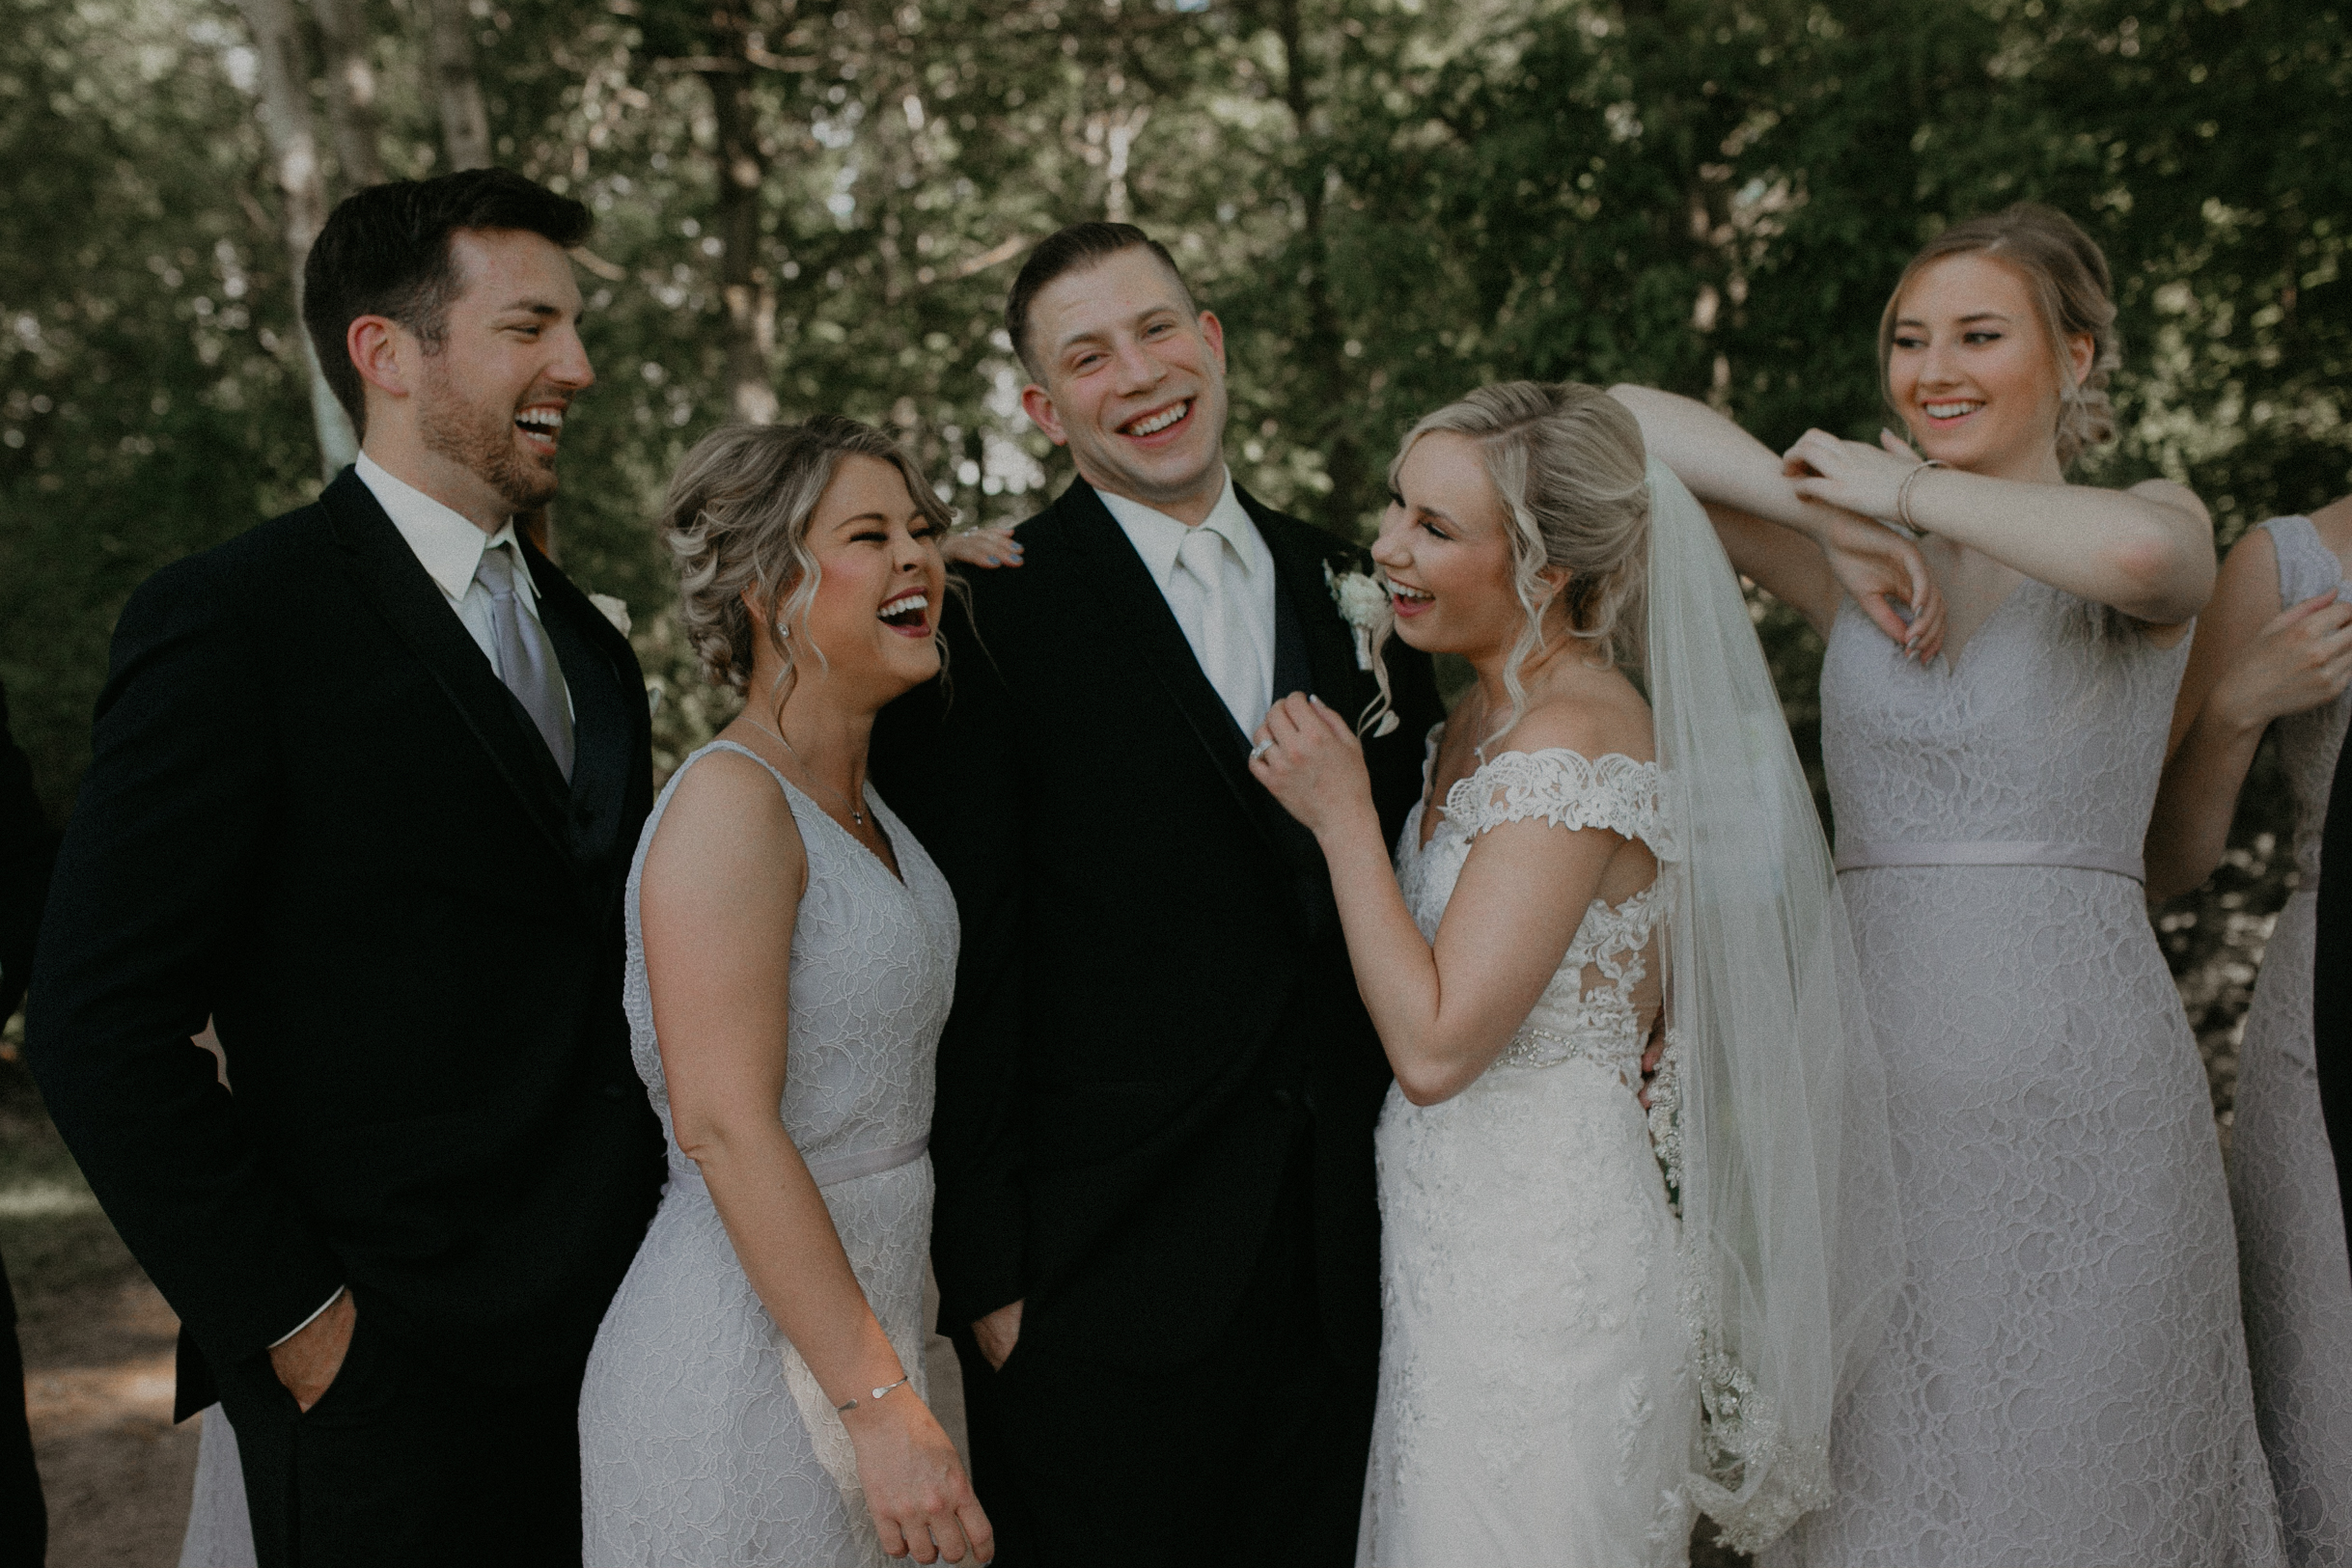 Andrea Wagner Photography captures real and authentic moments of the bridal party at RiverEdge Golf Club in Marshfield Wi